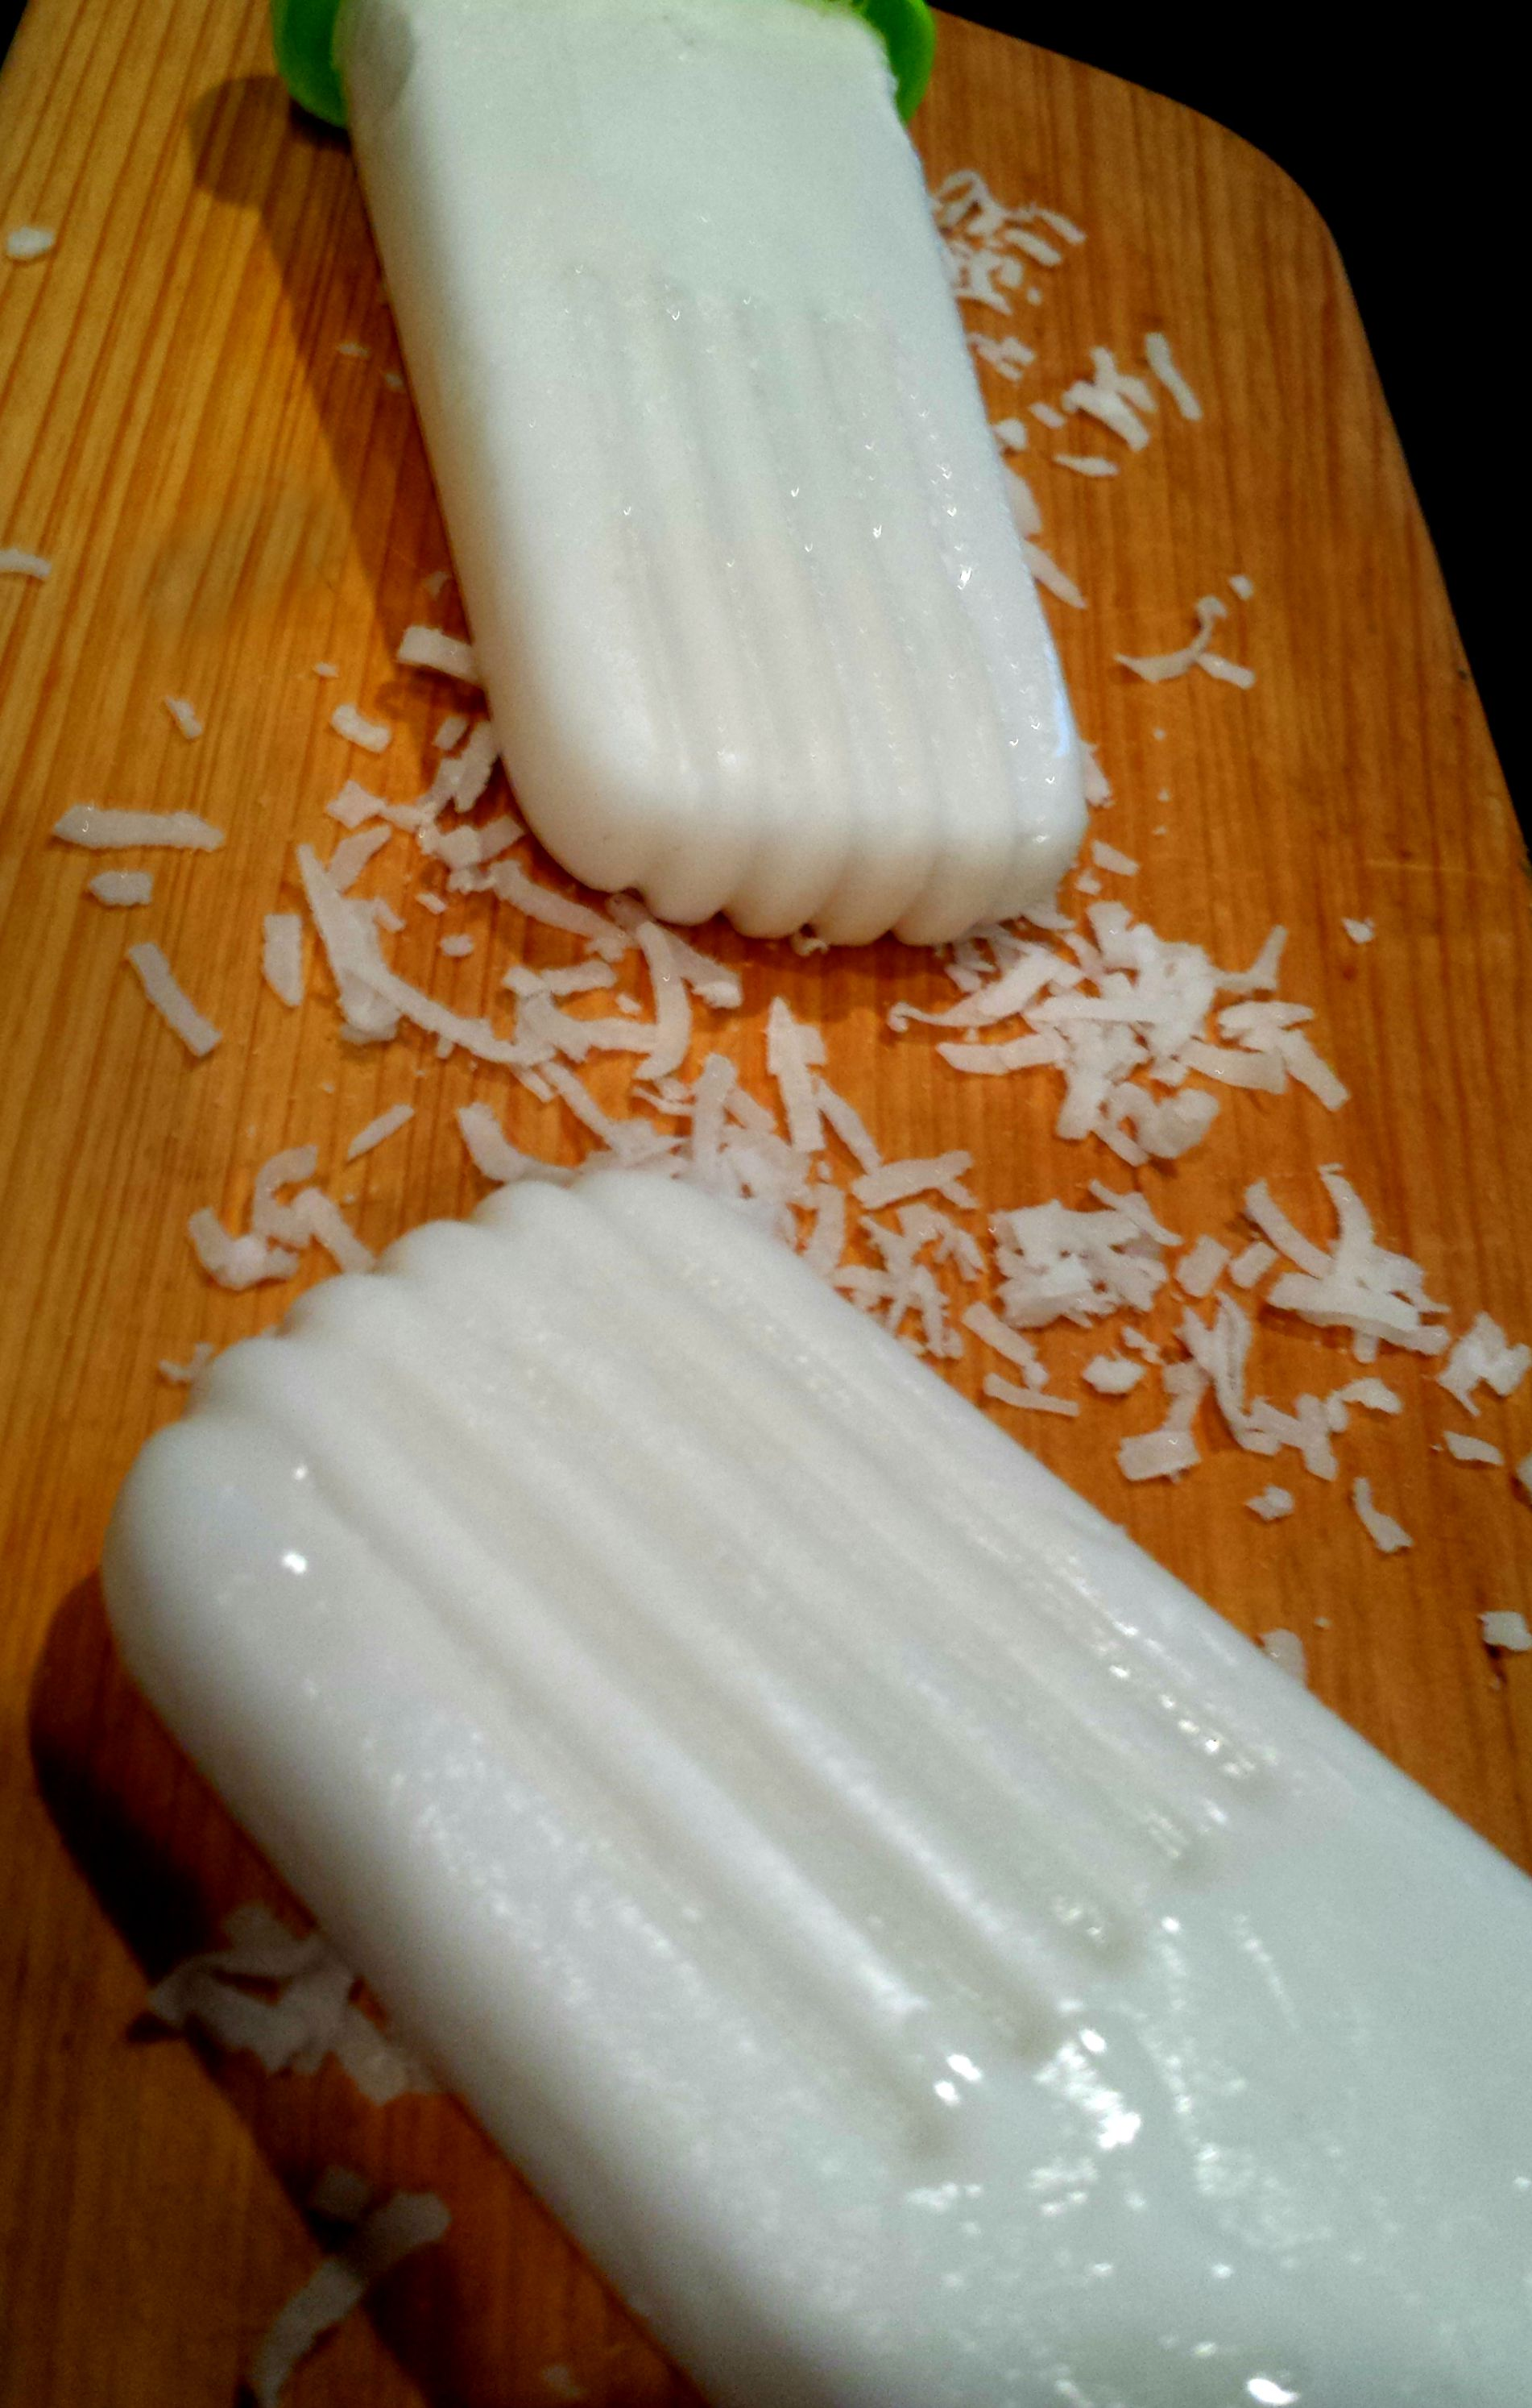 coconut popsicles-yum